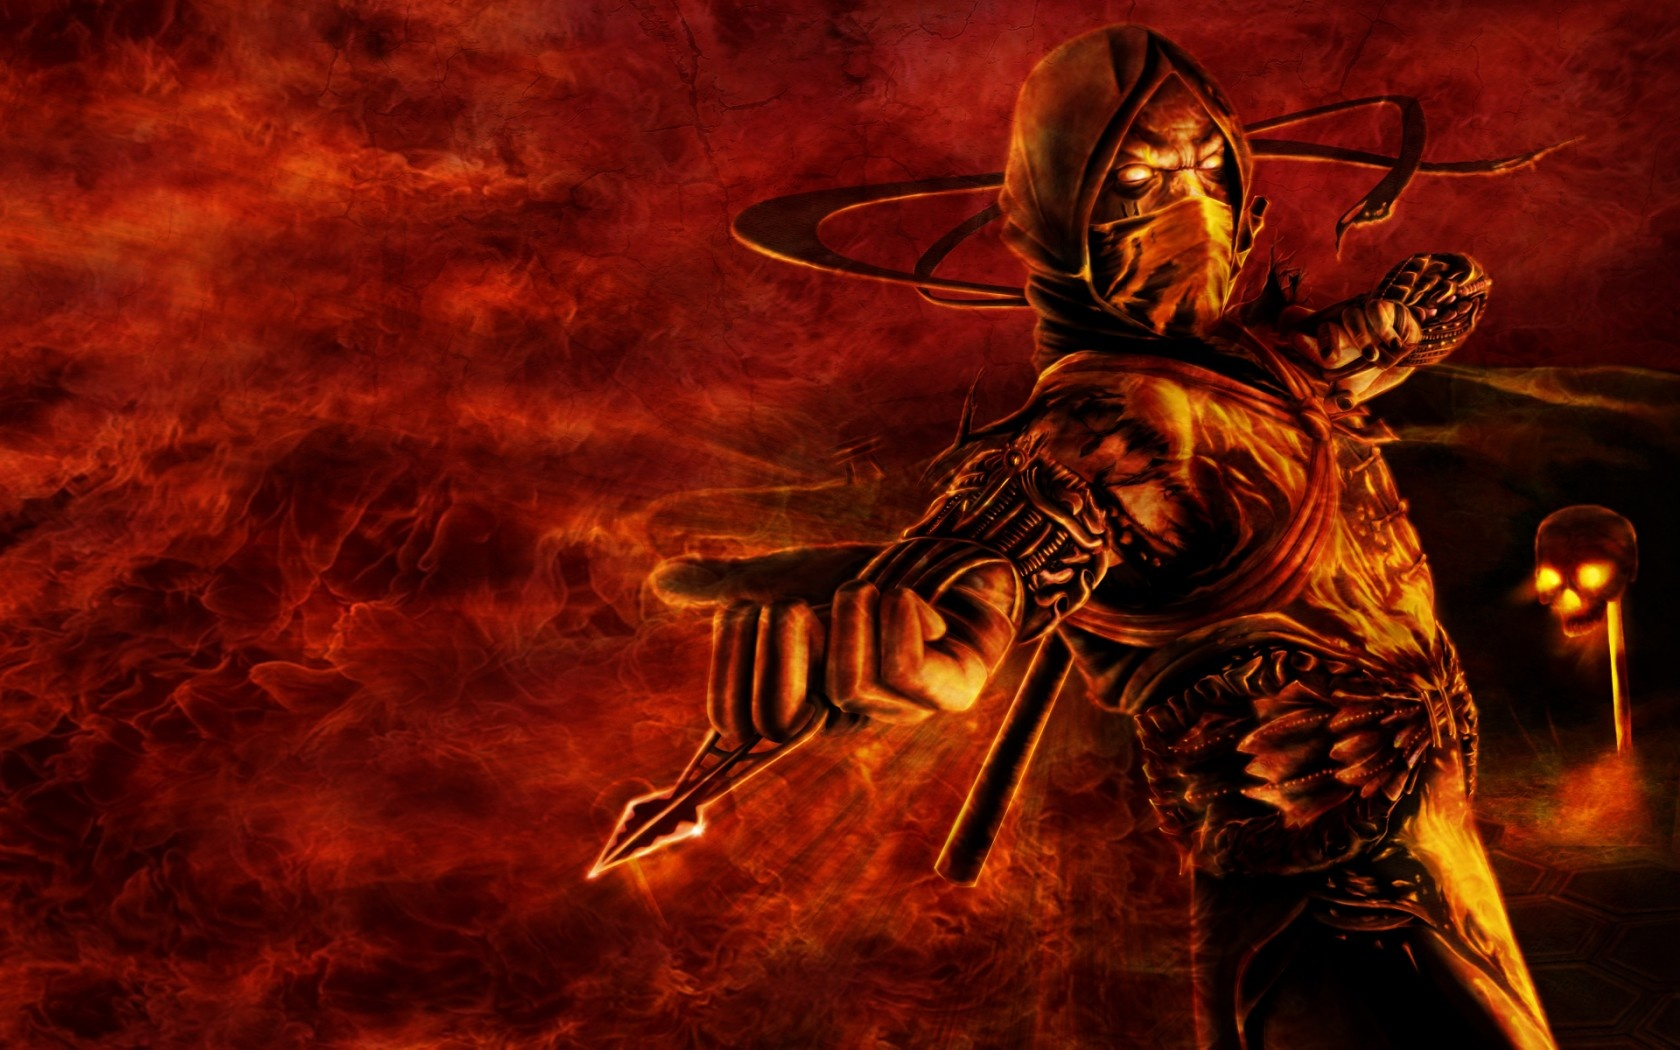 Scorpion Mortal Kombat 9 1680 x 1050 Download Close 1680x1050